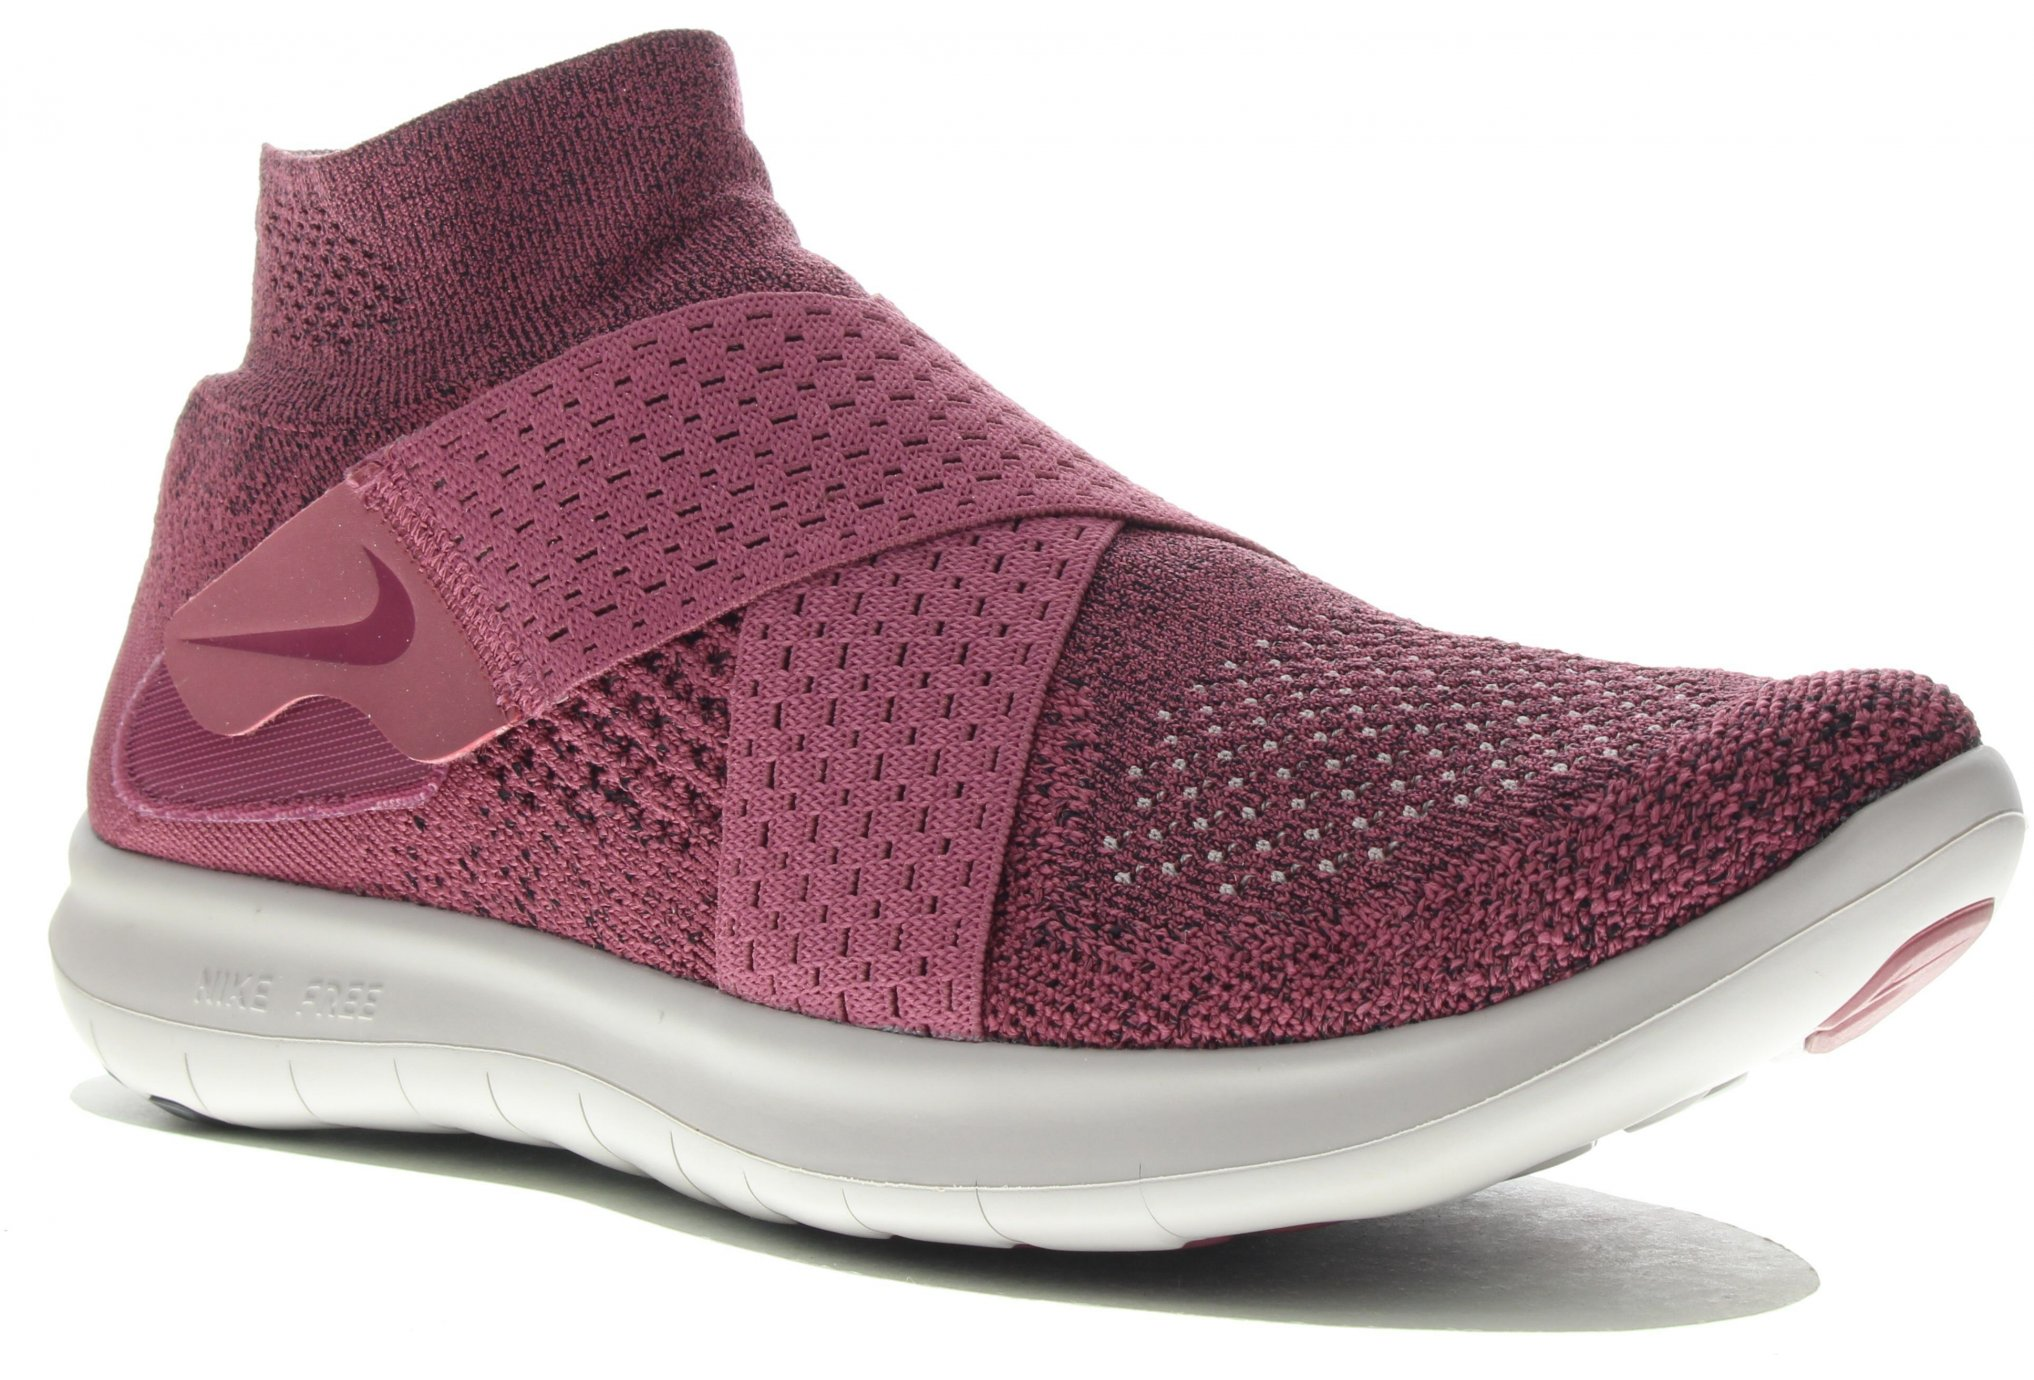 Nike Free RN Motion Flyknit 2017 W Chaussures running femme